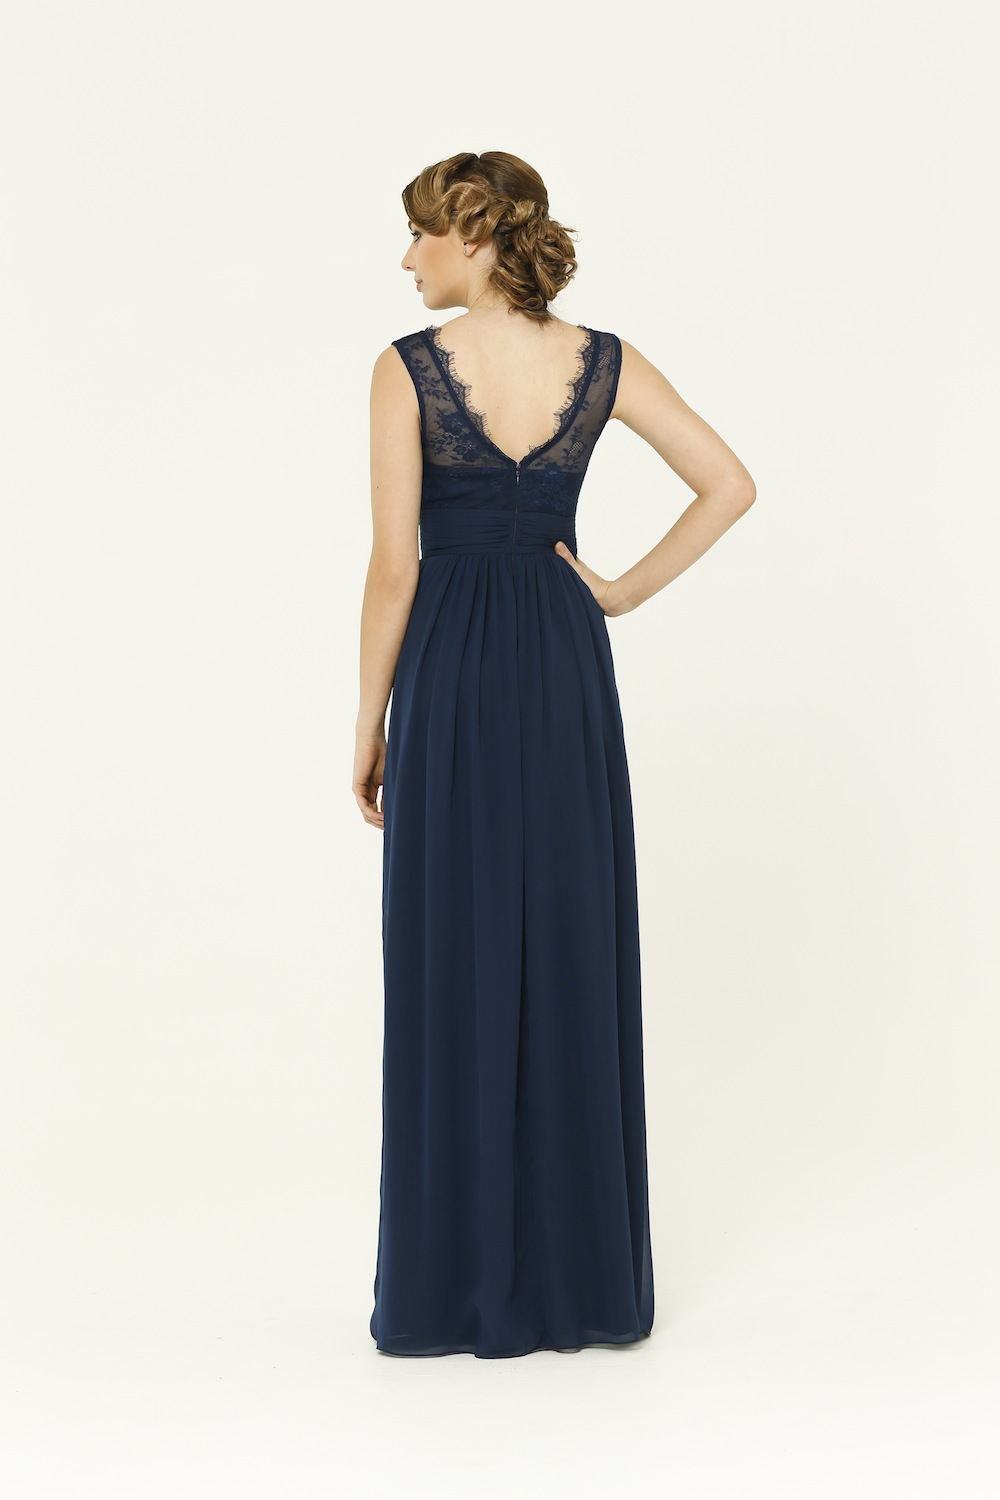 Charlotte Navy Bridesmaid Dress